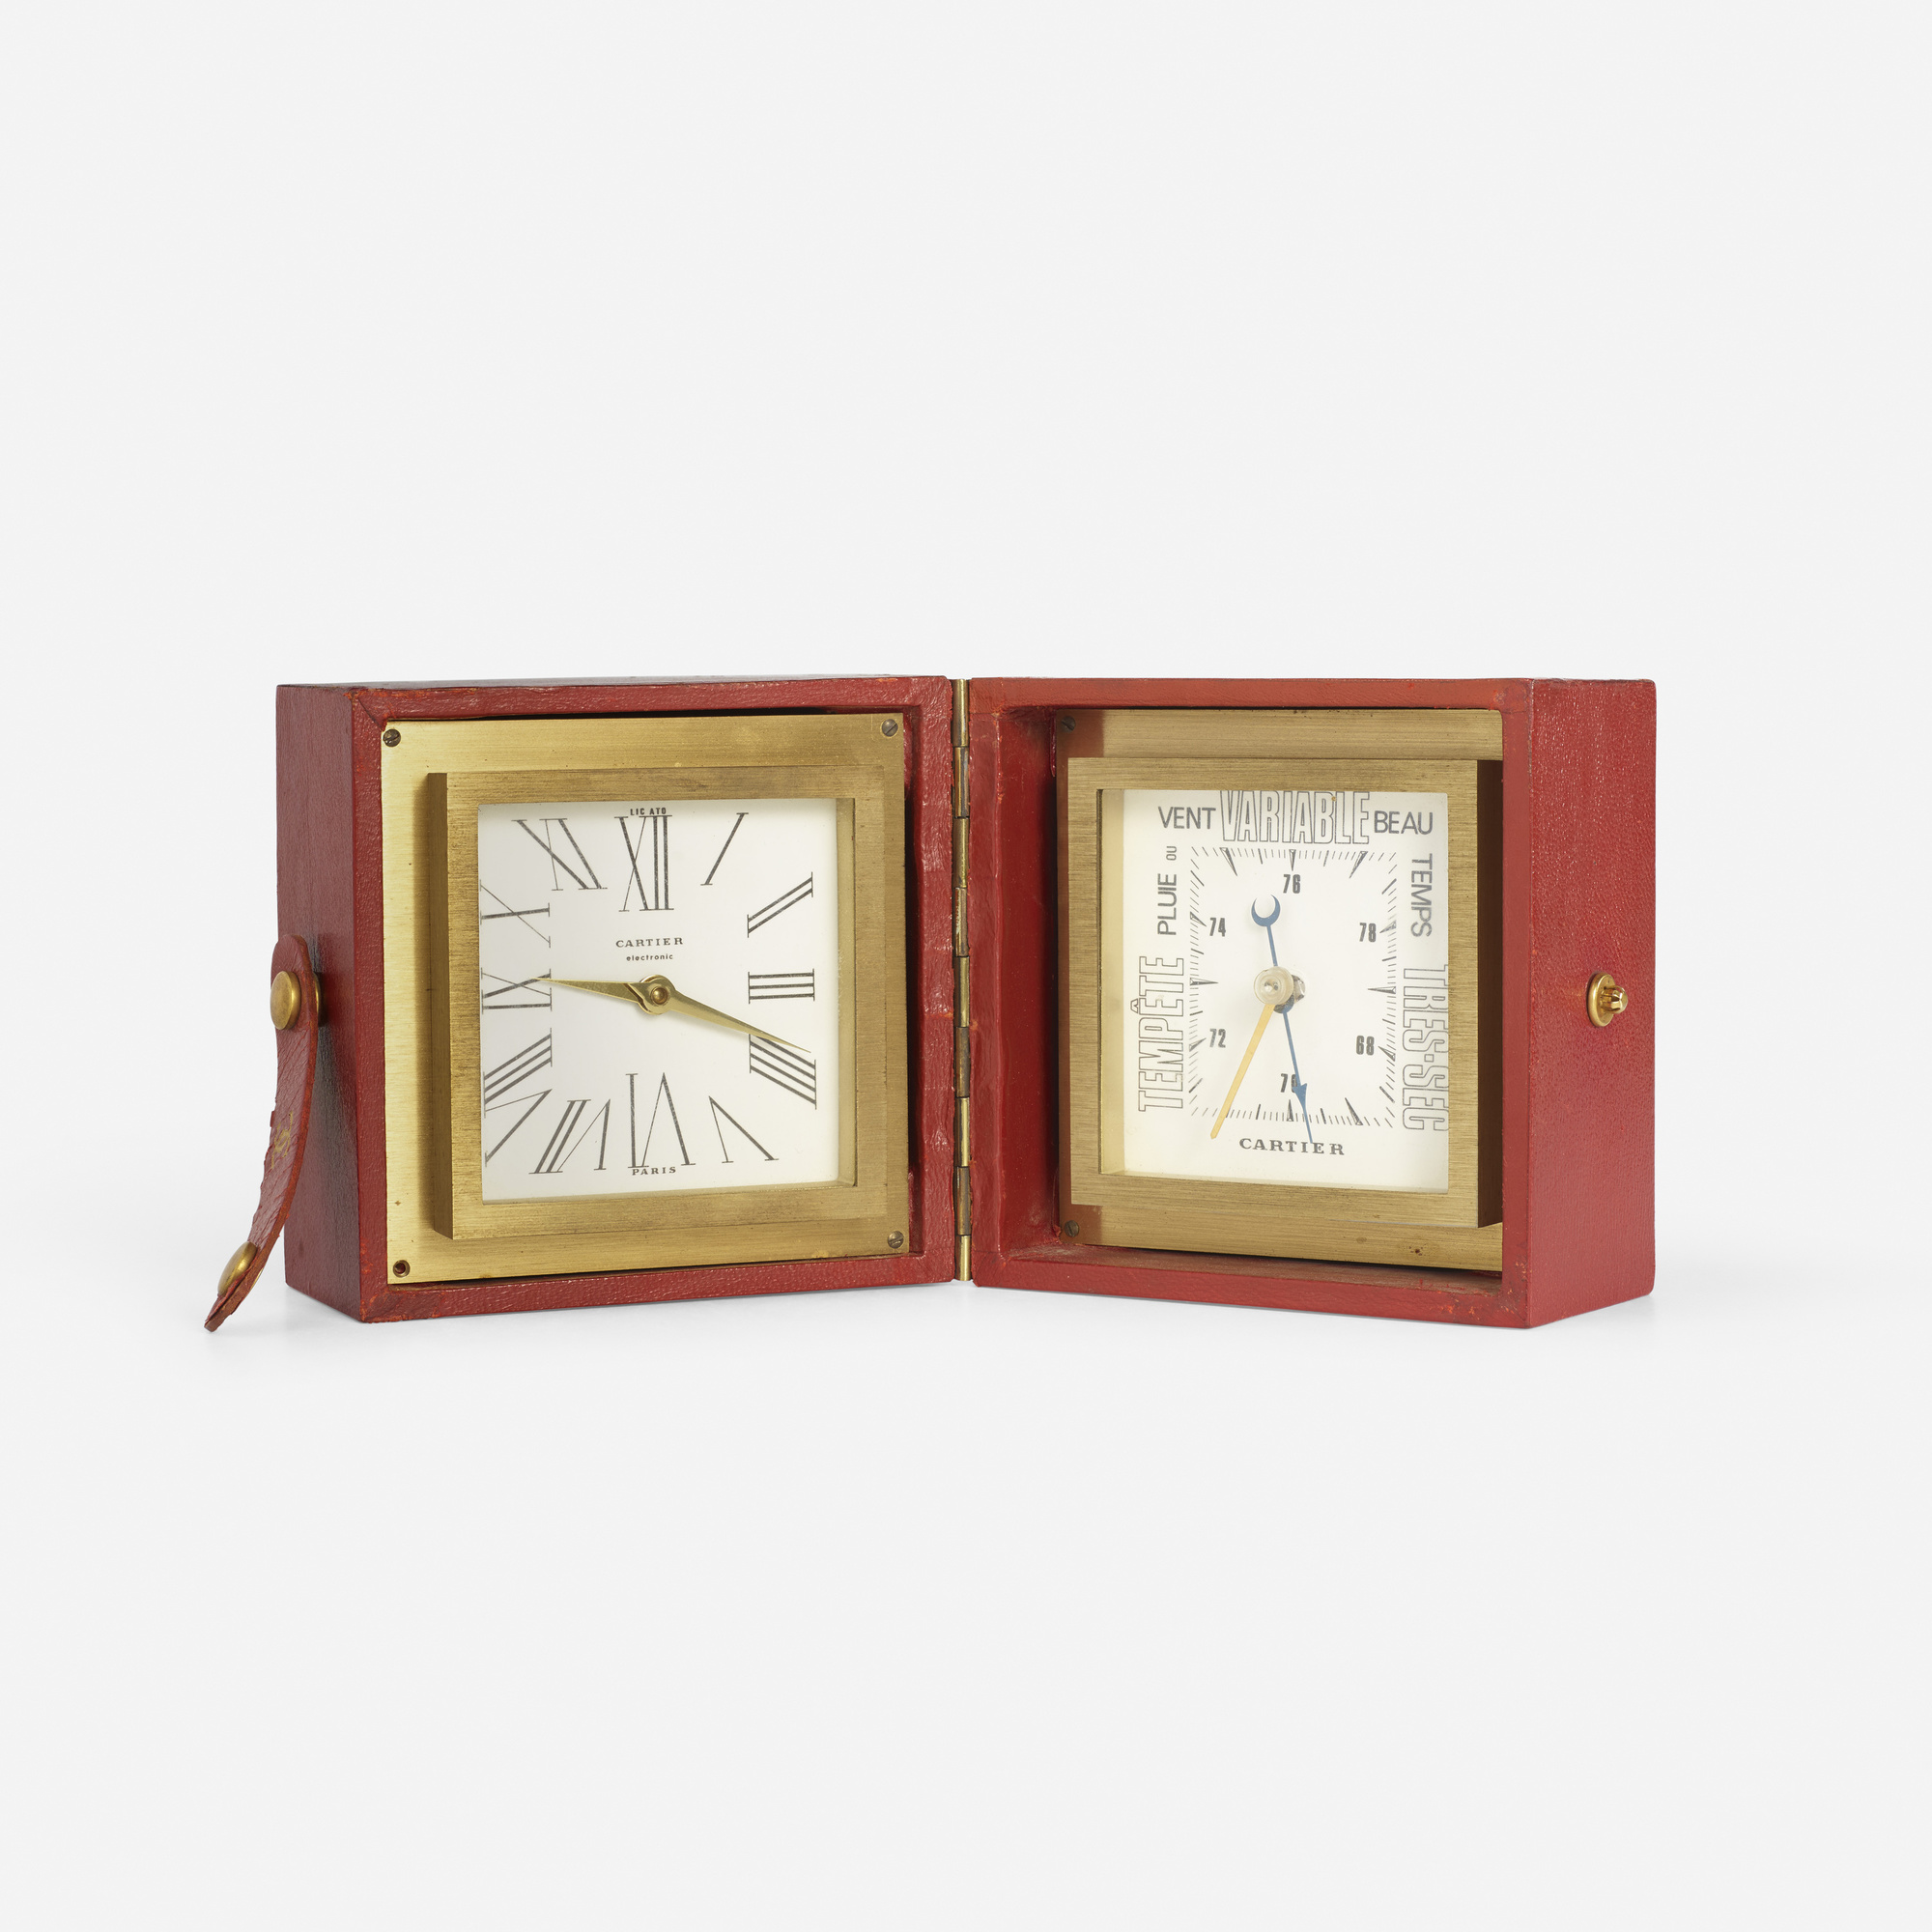 206: Cartier / A desk clock and barometer (1 of 2)